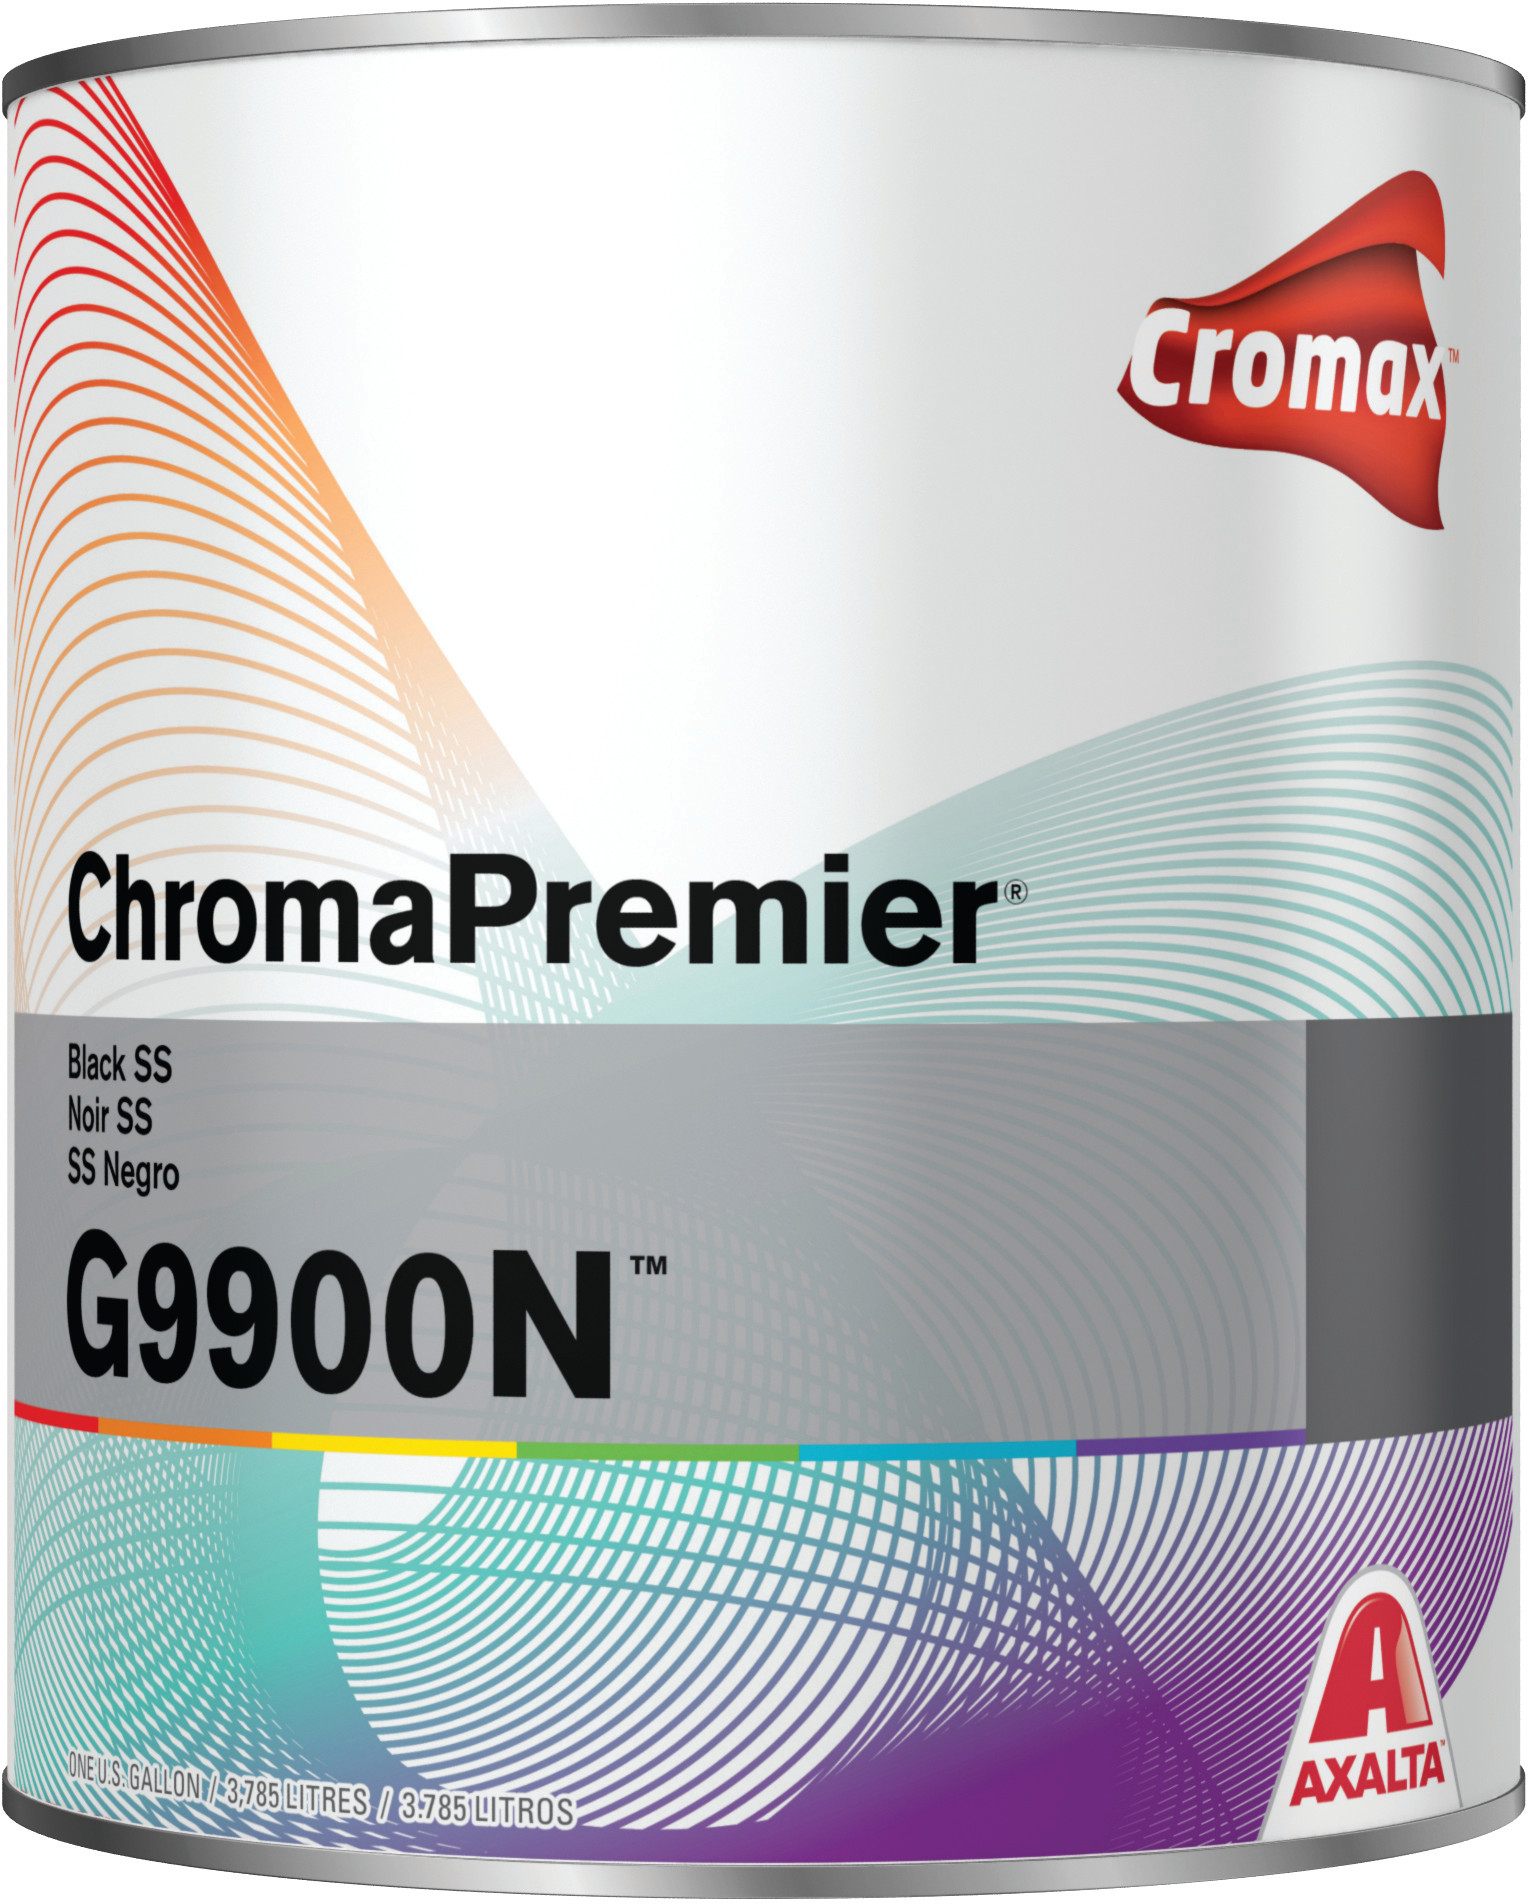 Dupont Chromapremier G9900n Super Jet Black Gallon